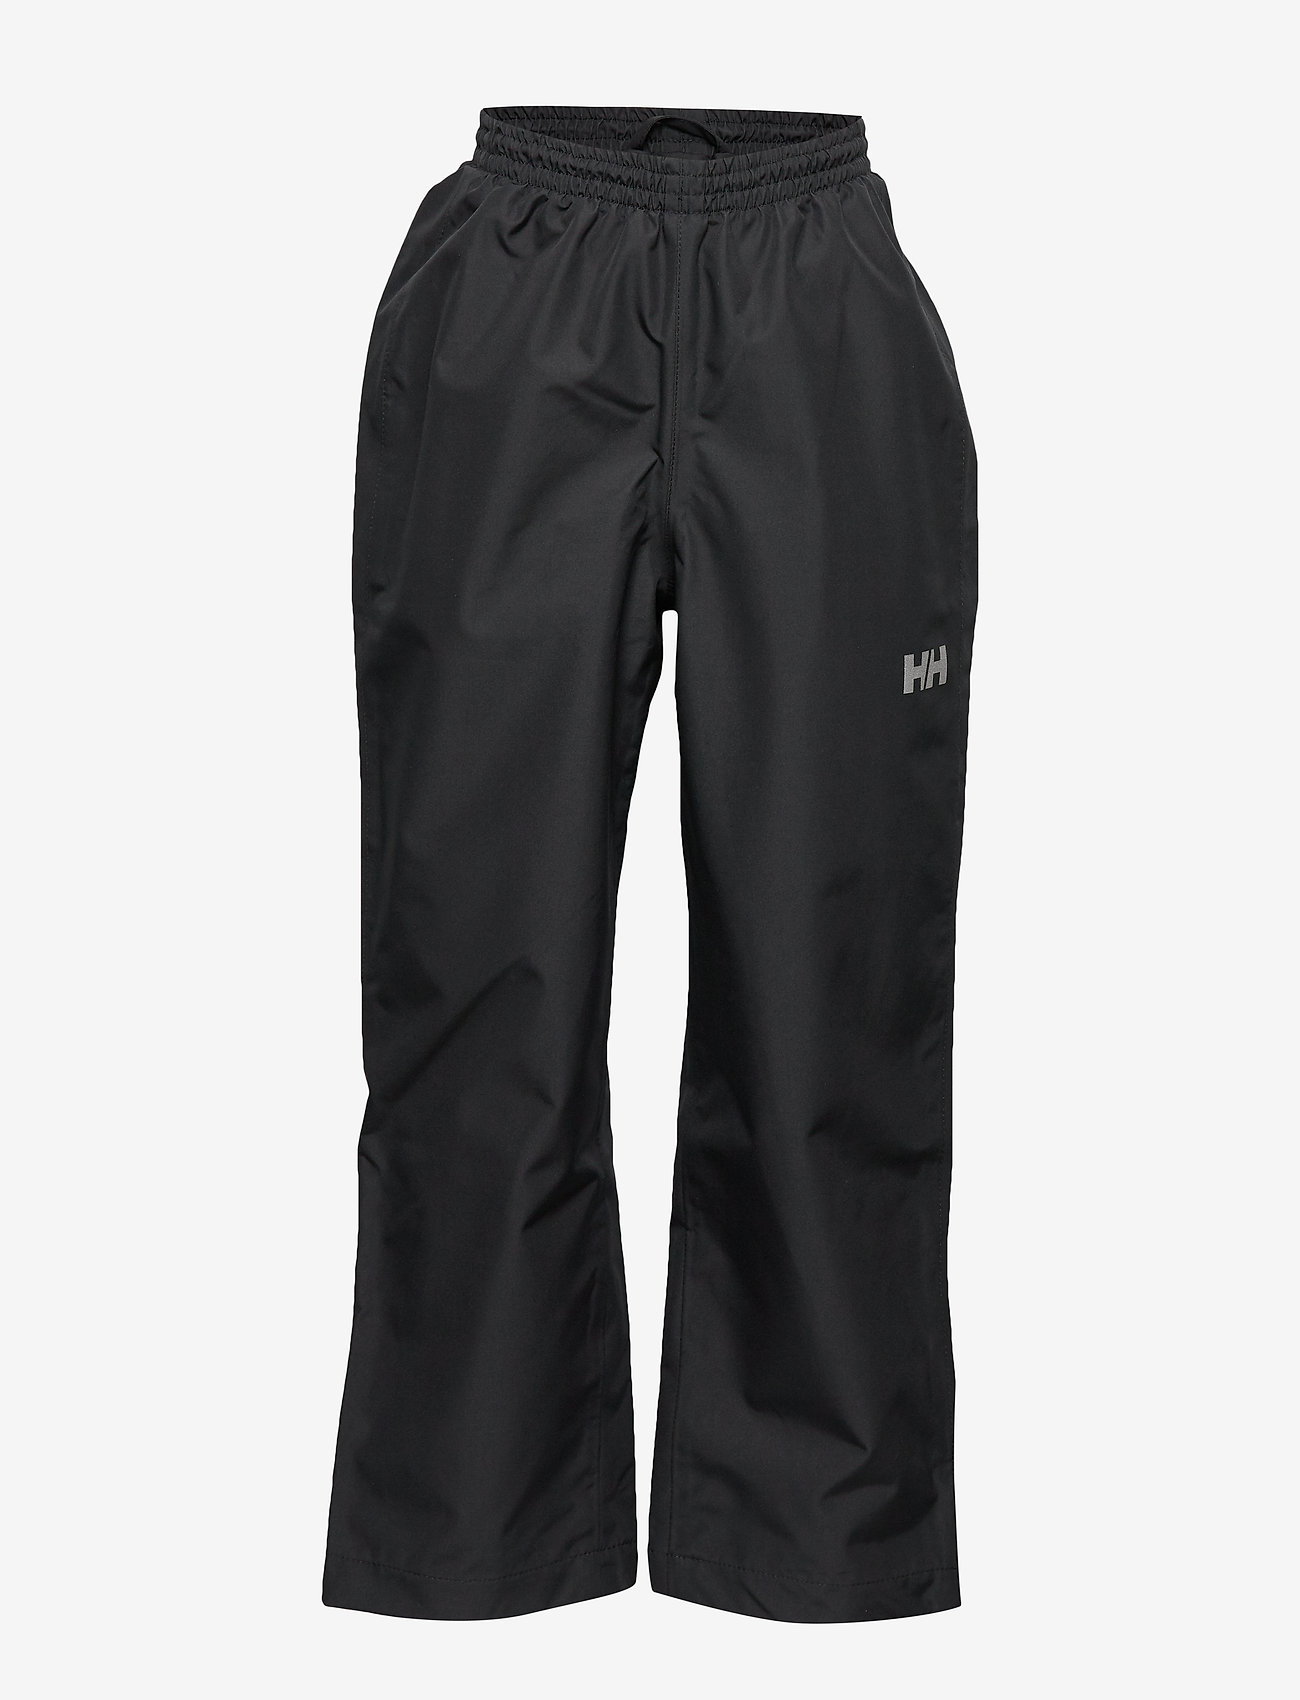 Helly Hansen - JR DUBLINER PANT - housut - black - 0